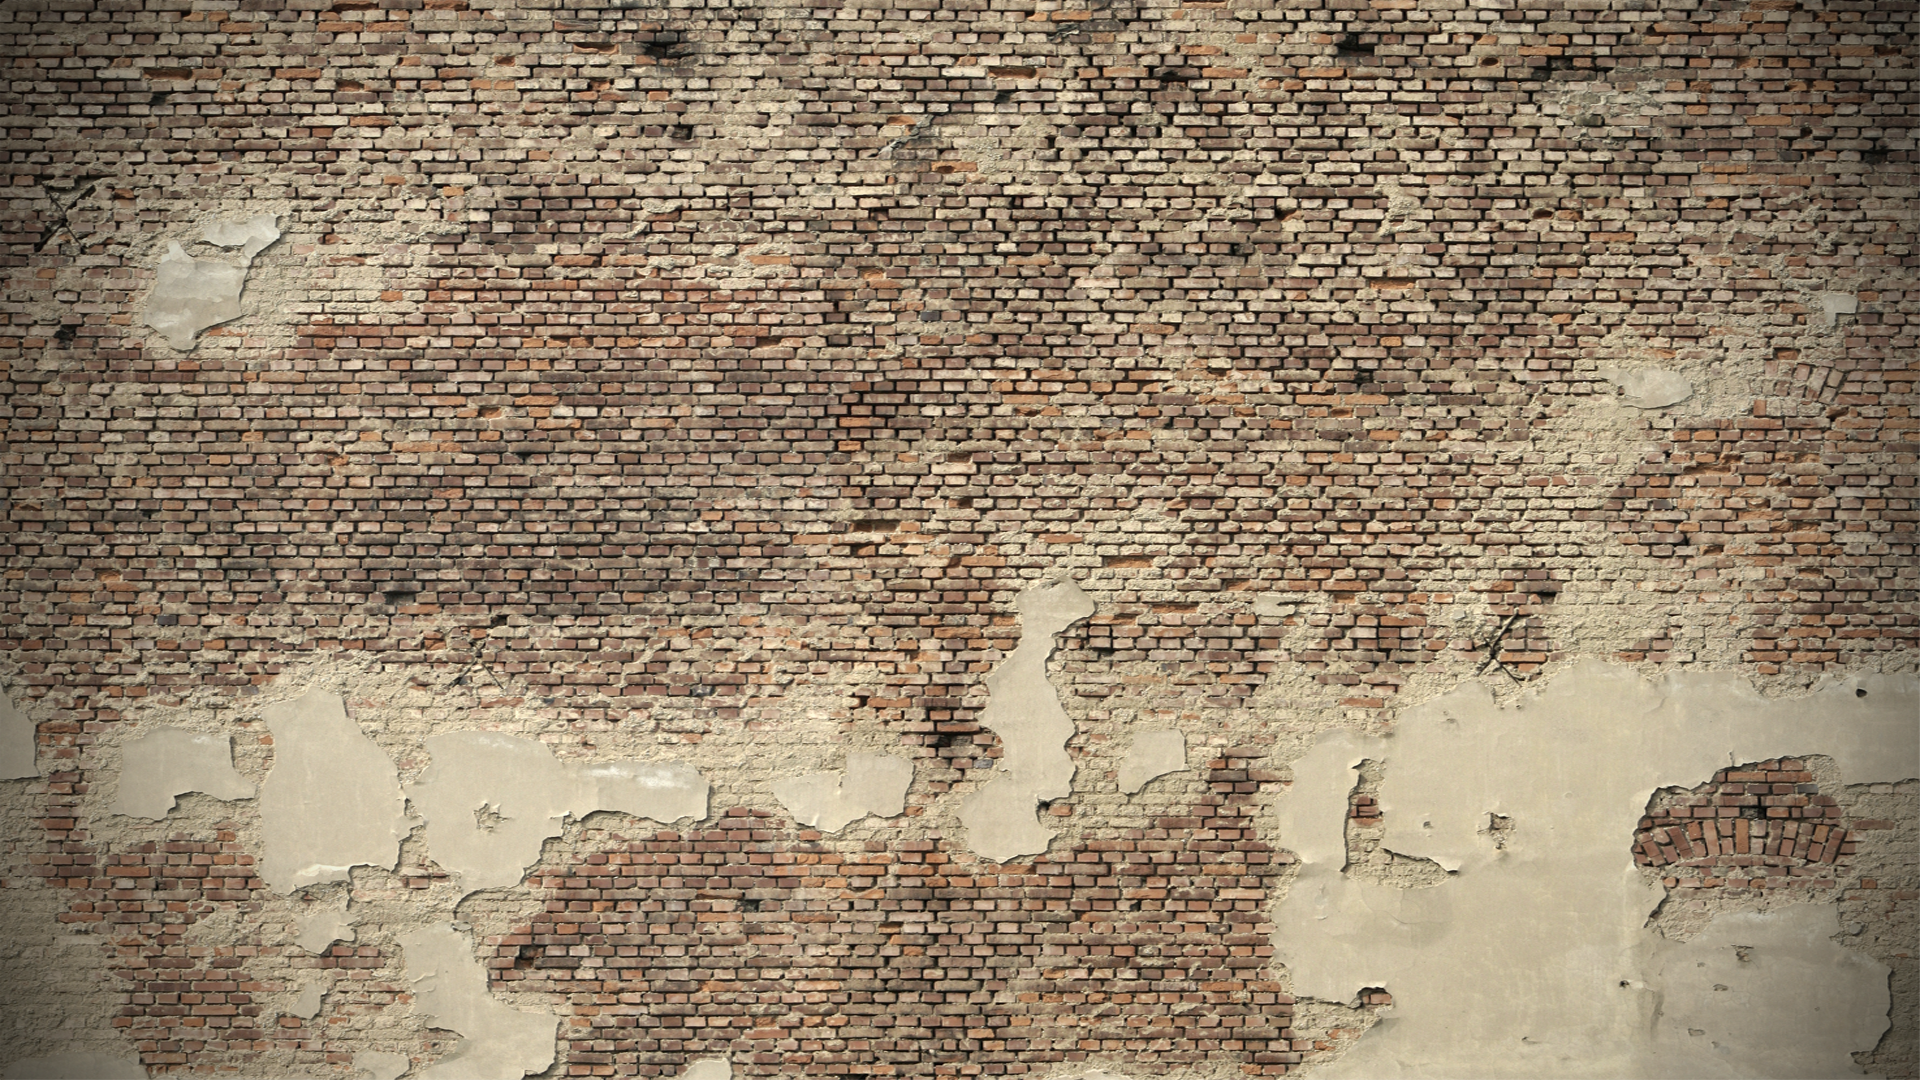 Wall Textures Bricks Brick